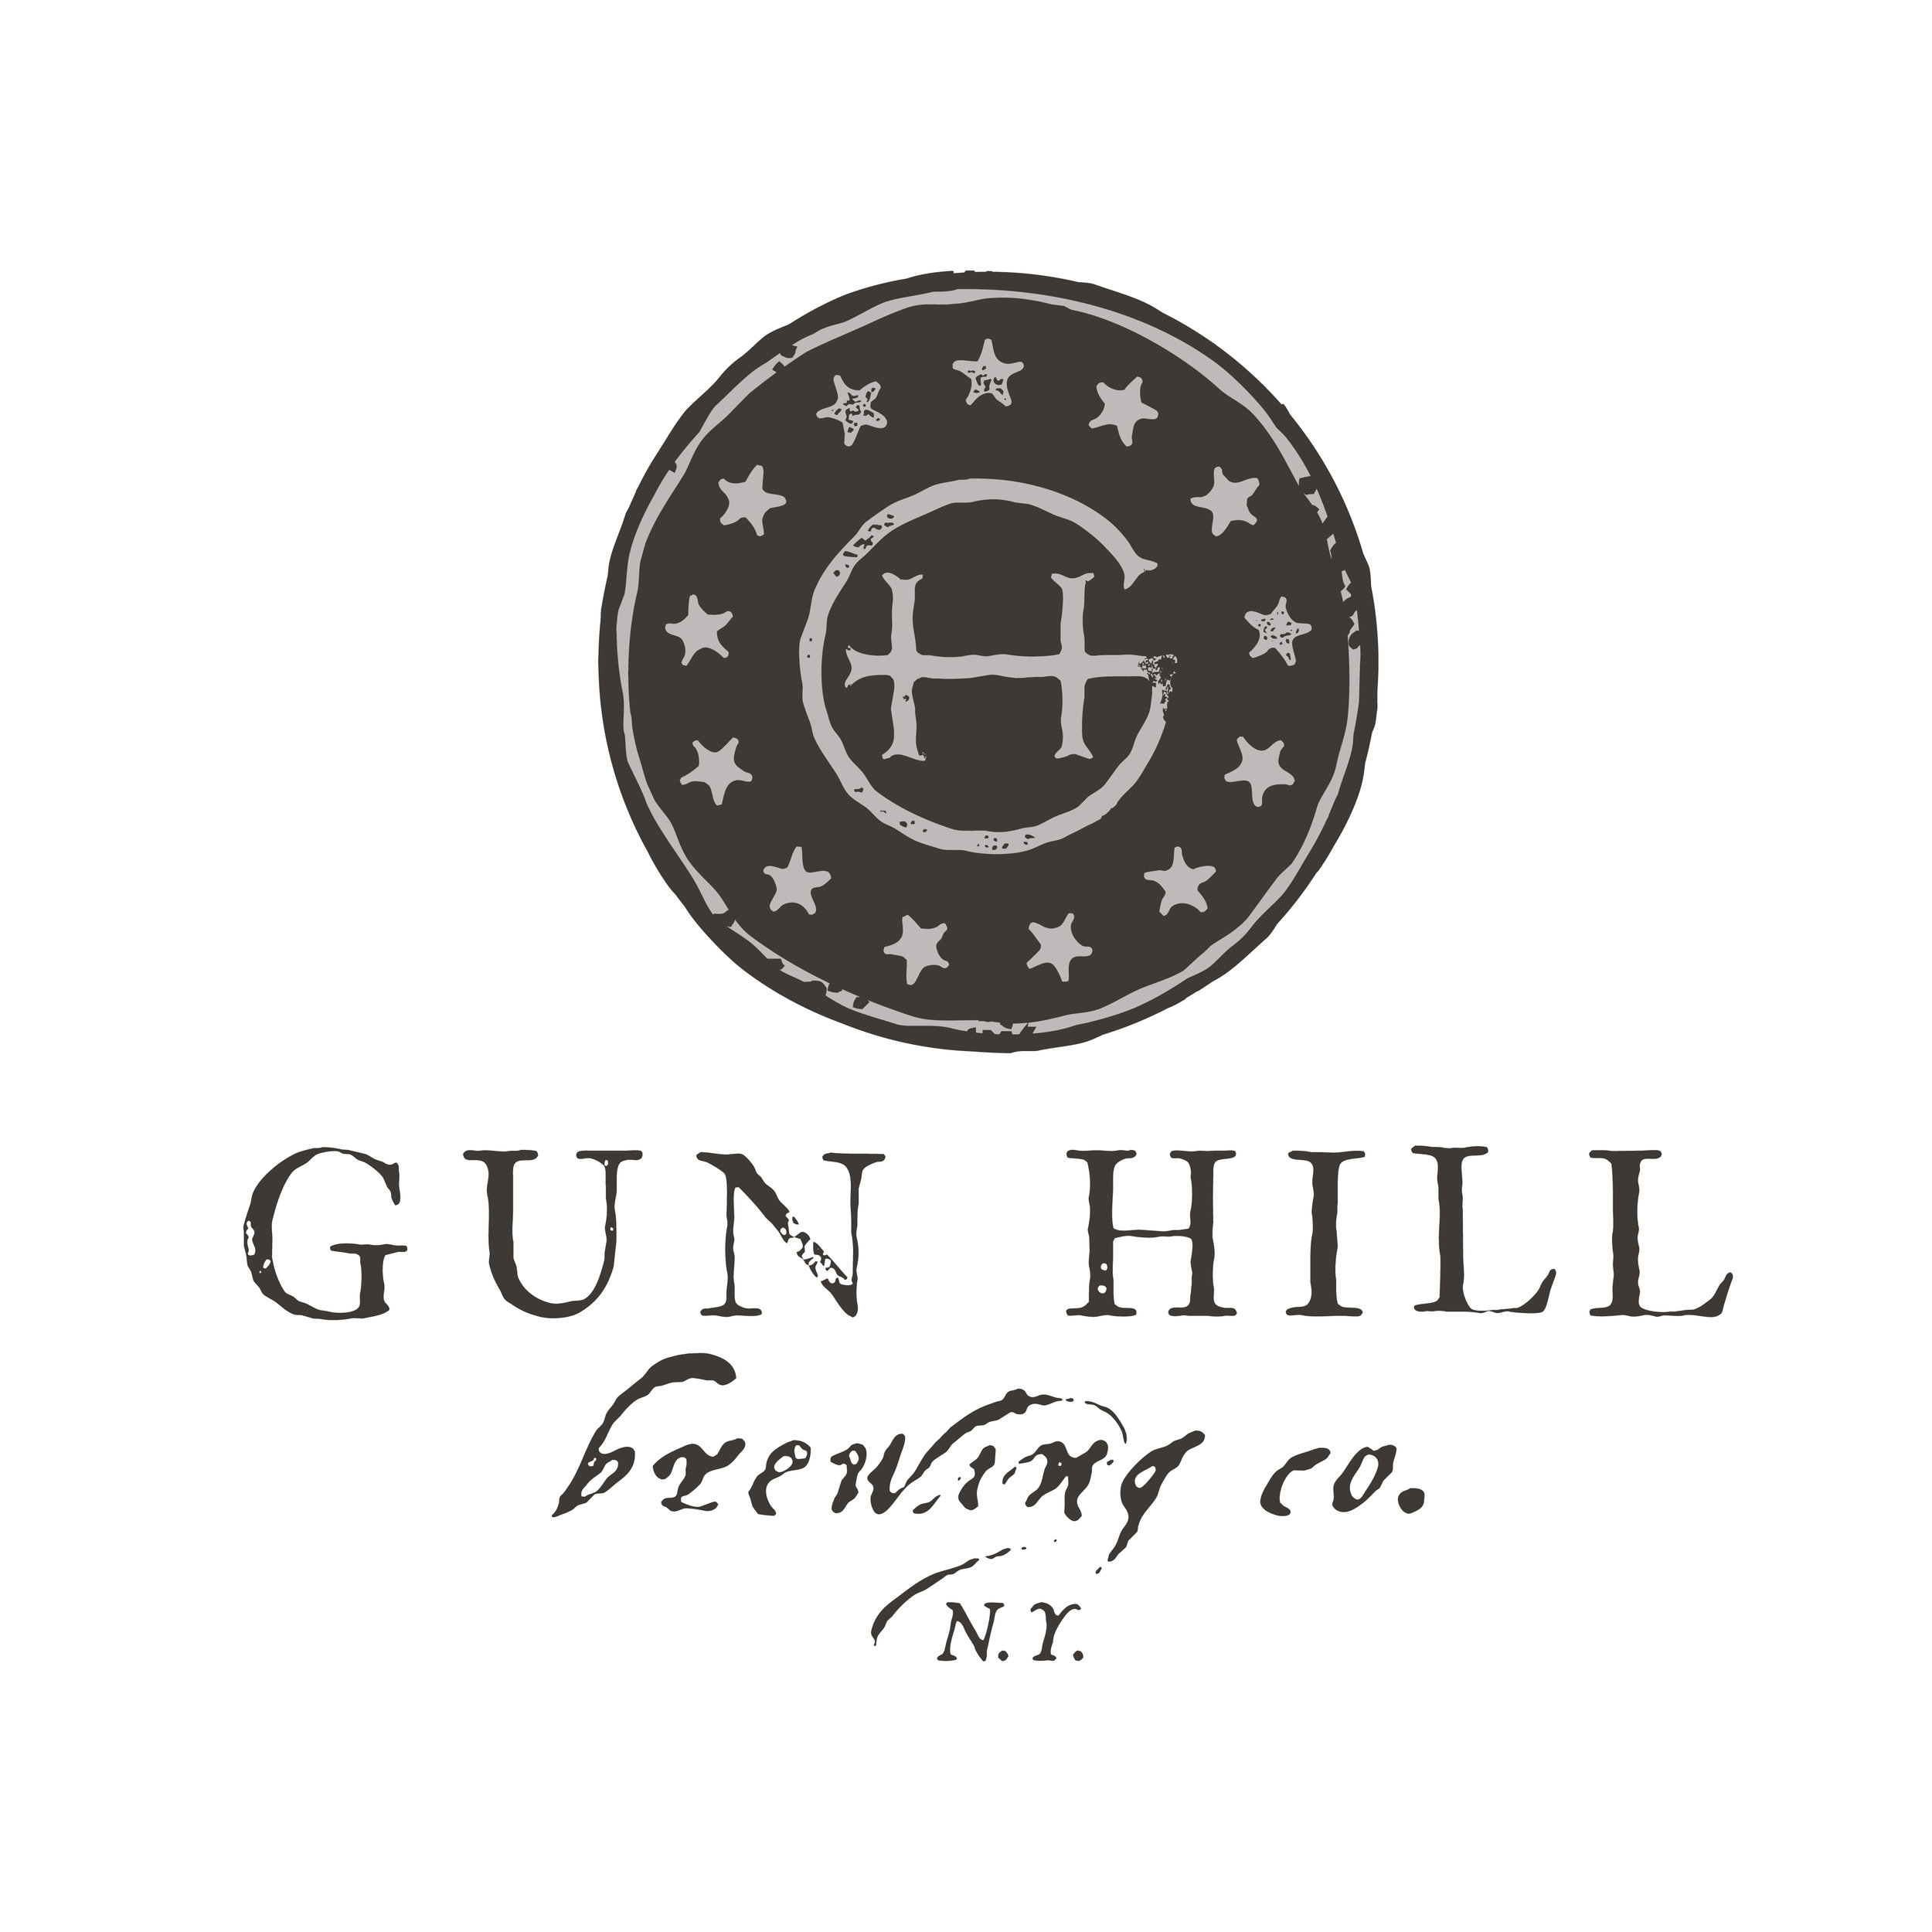 Website_Gunhill-01.jpg